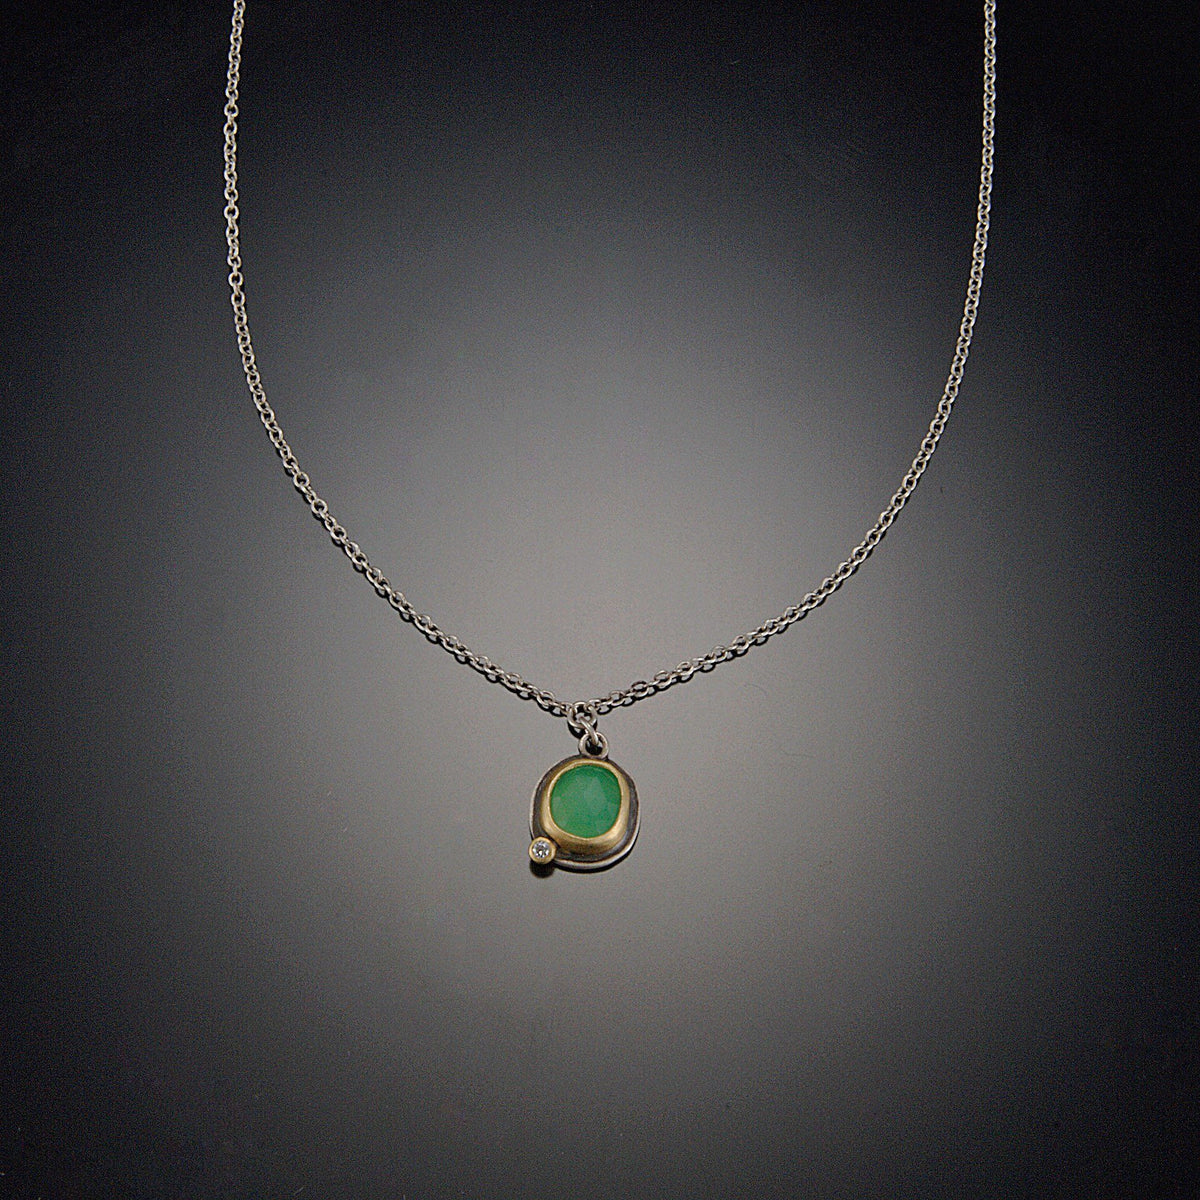 van chrysoprase chalcedony products green alhambra cleef necklace rare arpels gold